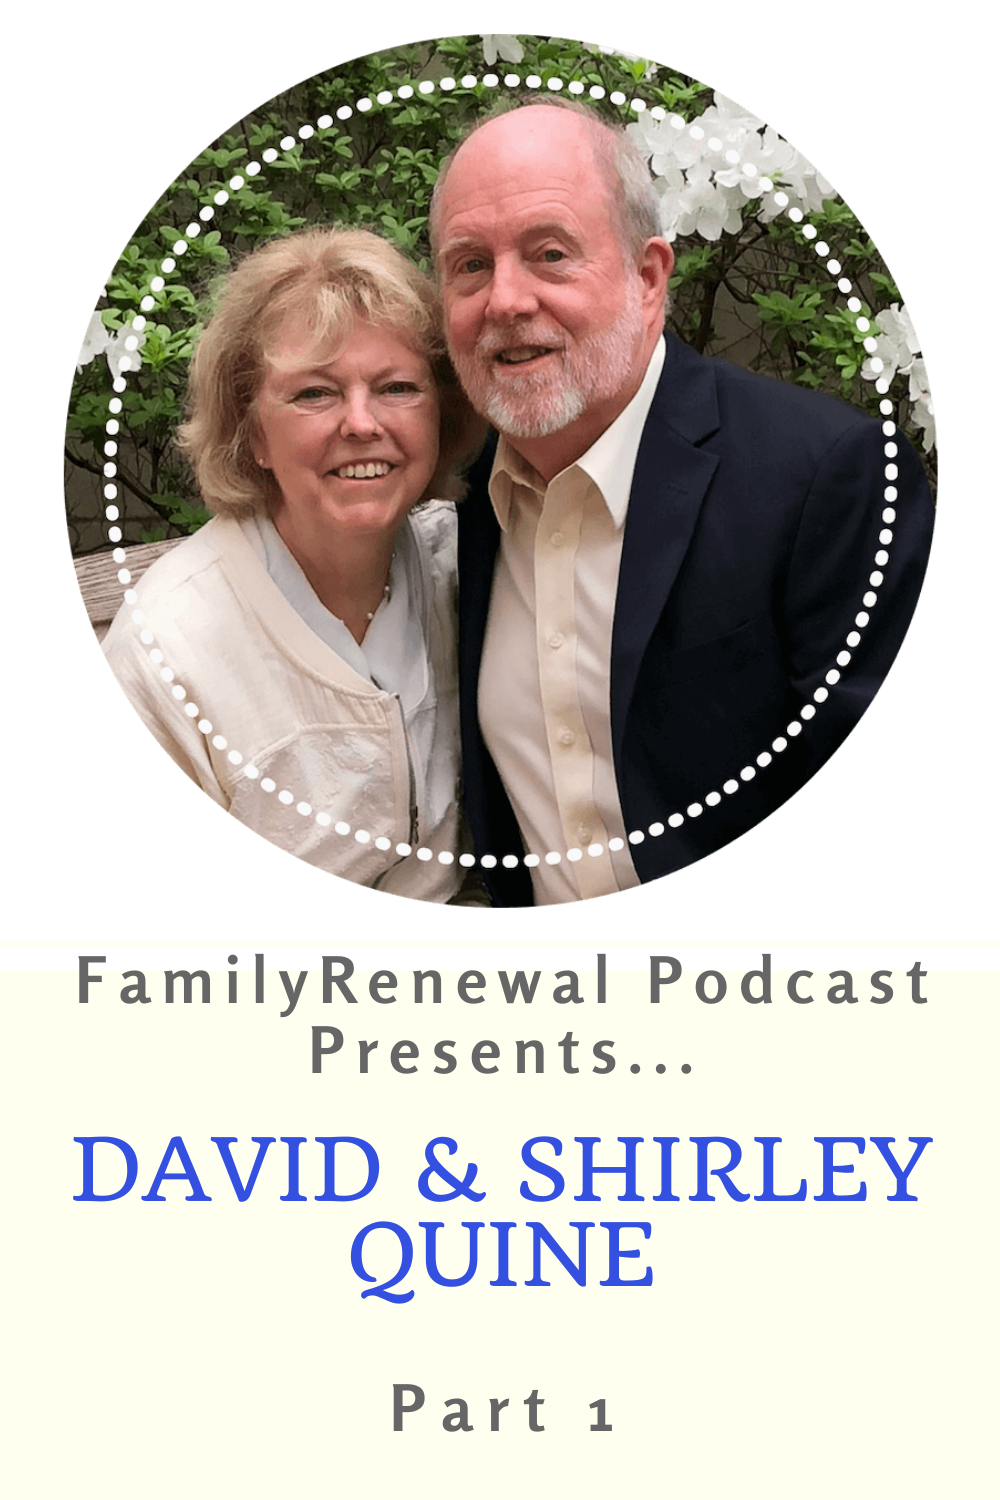 In this episode, Israel Wayne introduces David & Shirley Quine. They are homeschooling pioneers, parents of nine, and founders of Cornerstone Curriculum.